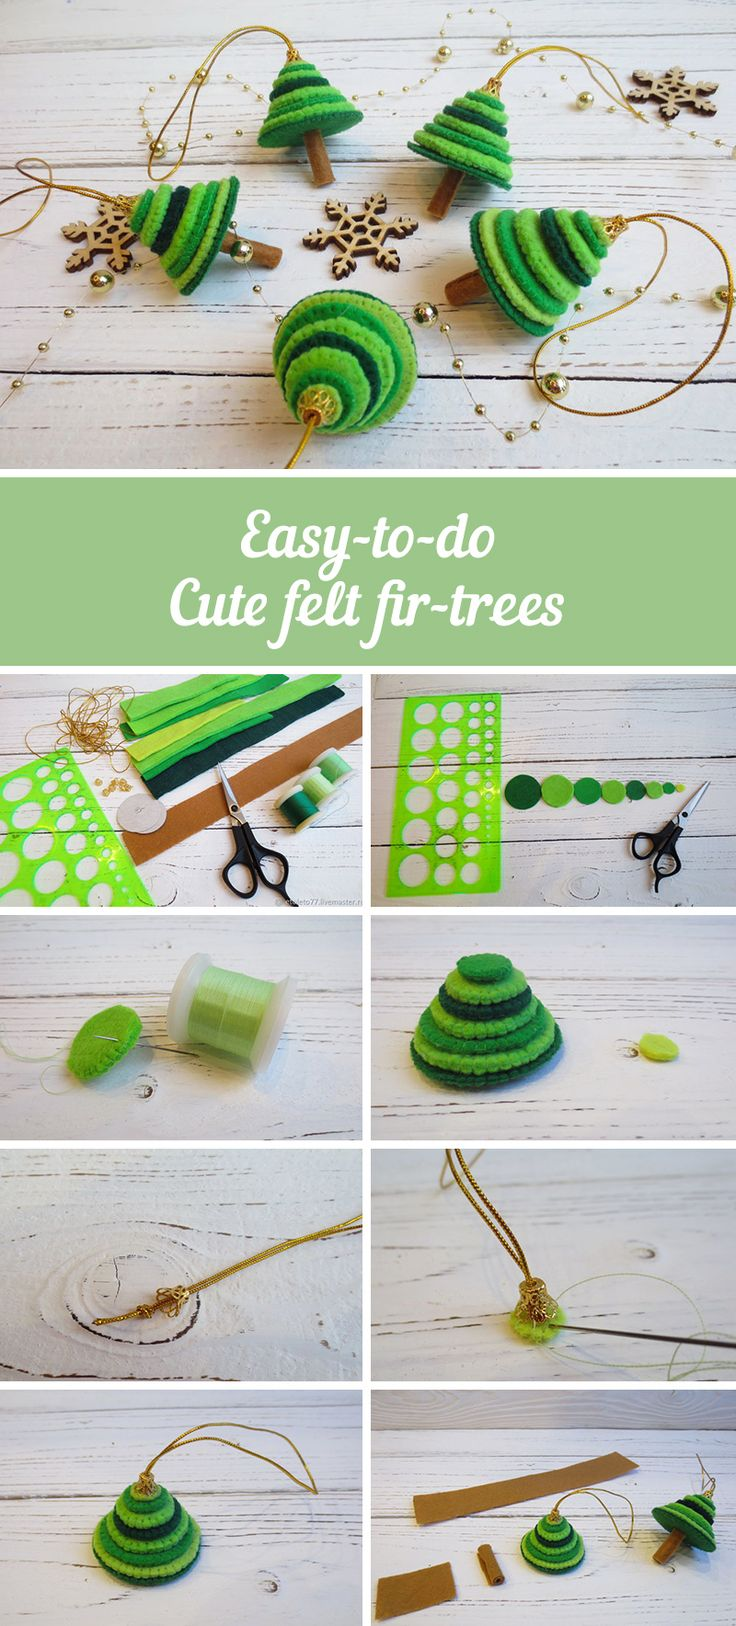 How to make tiny felt fir-trees | Mastering Christmas trees from felt